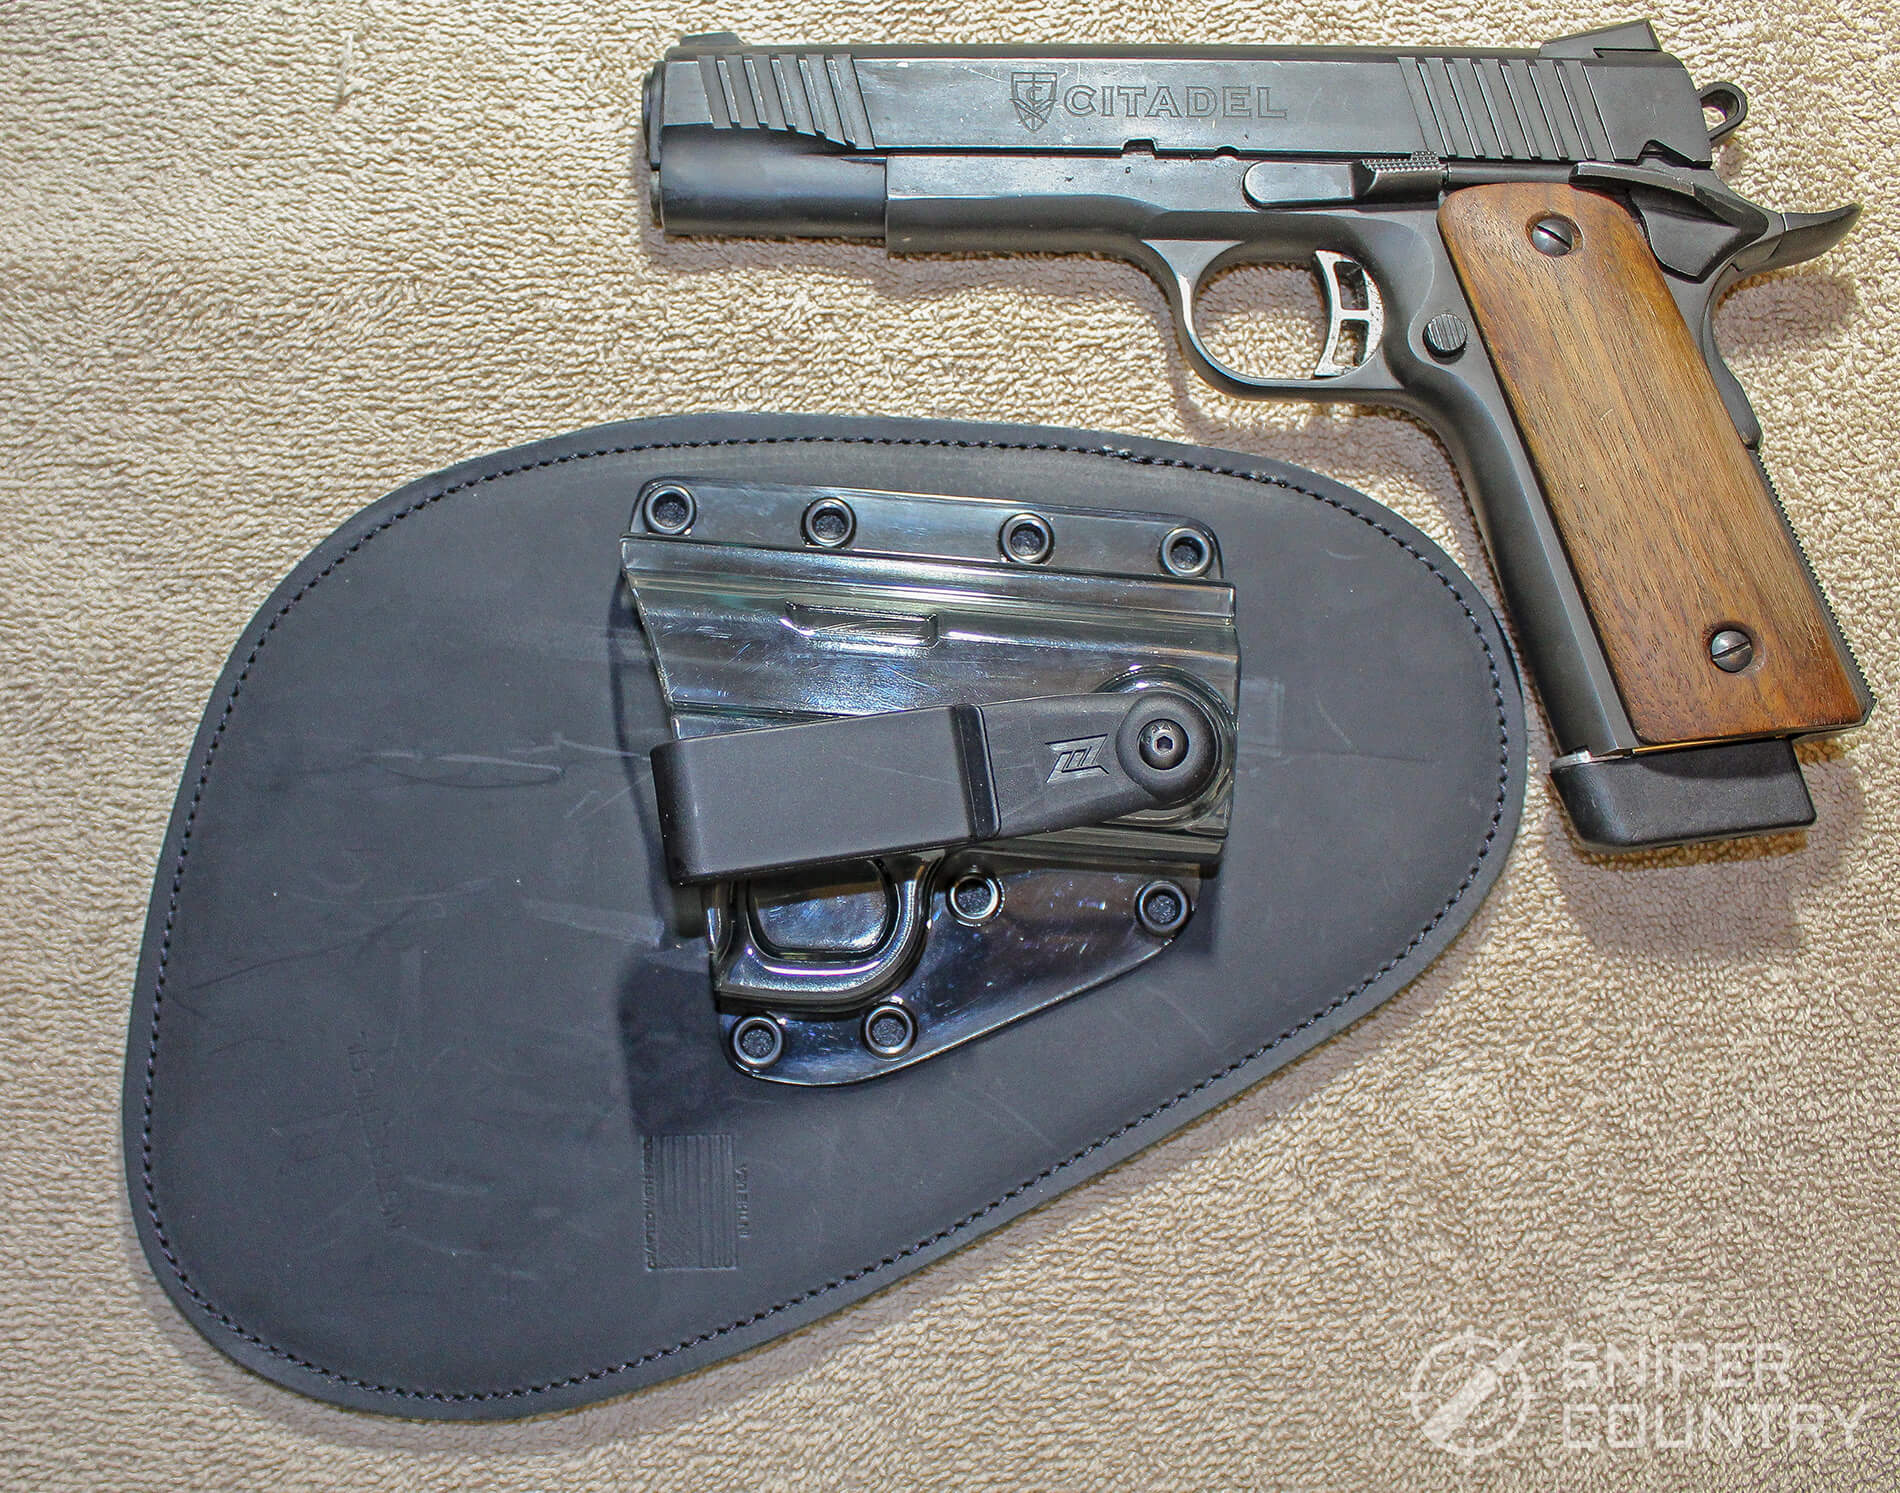 The 1911 next to professional holster